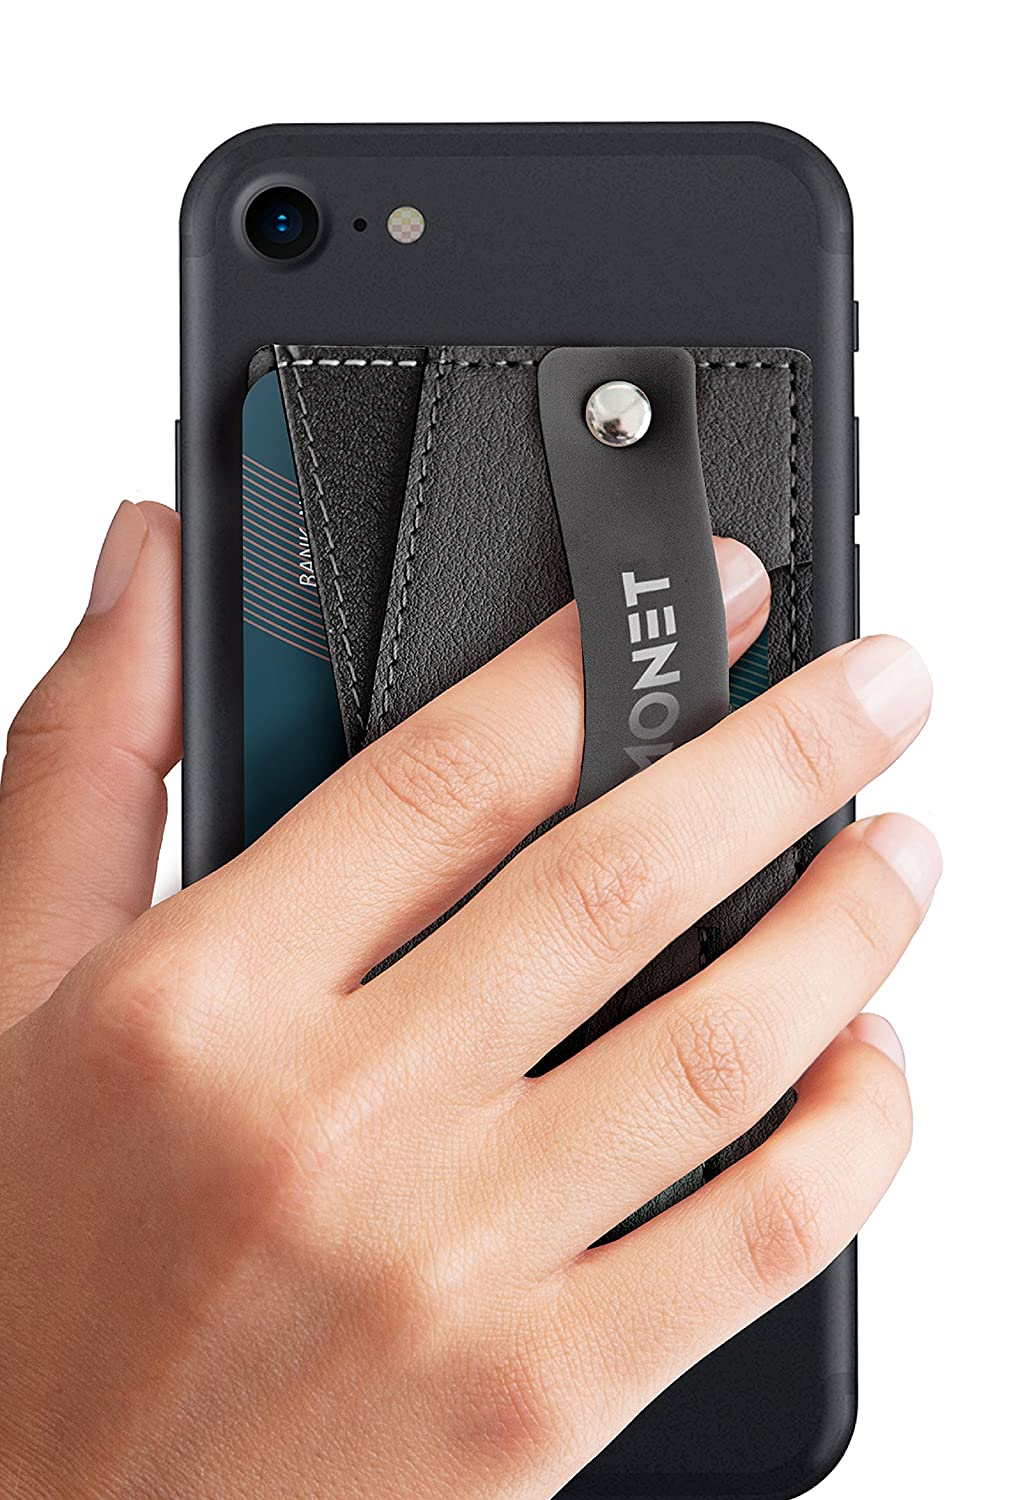 Monet Slim Wallet with Expanding Stand and Grip for Smartphones (Black Night)